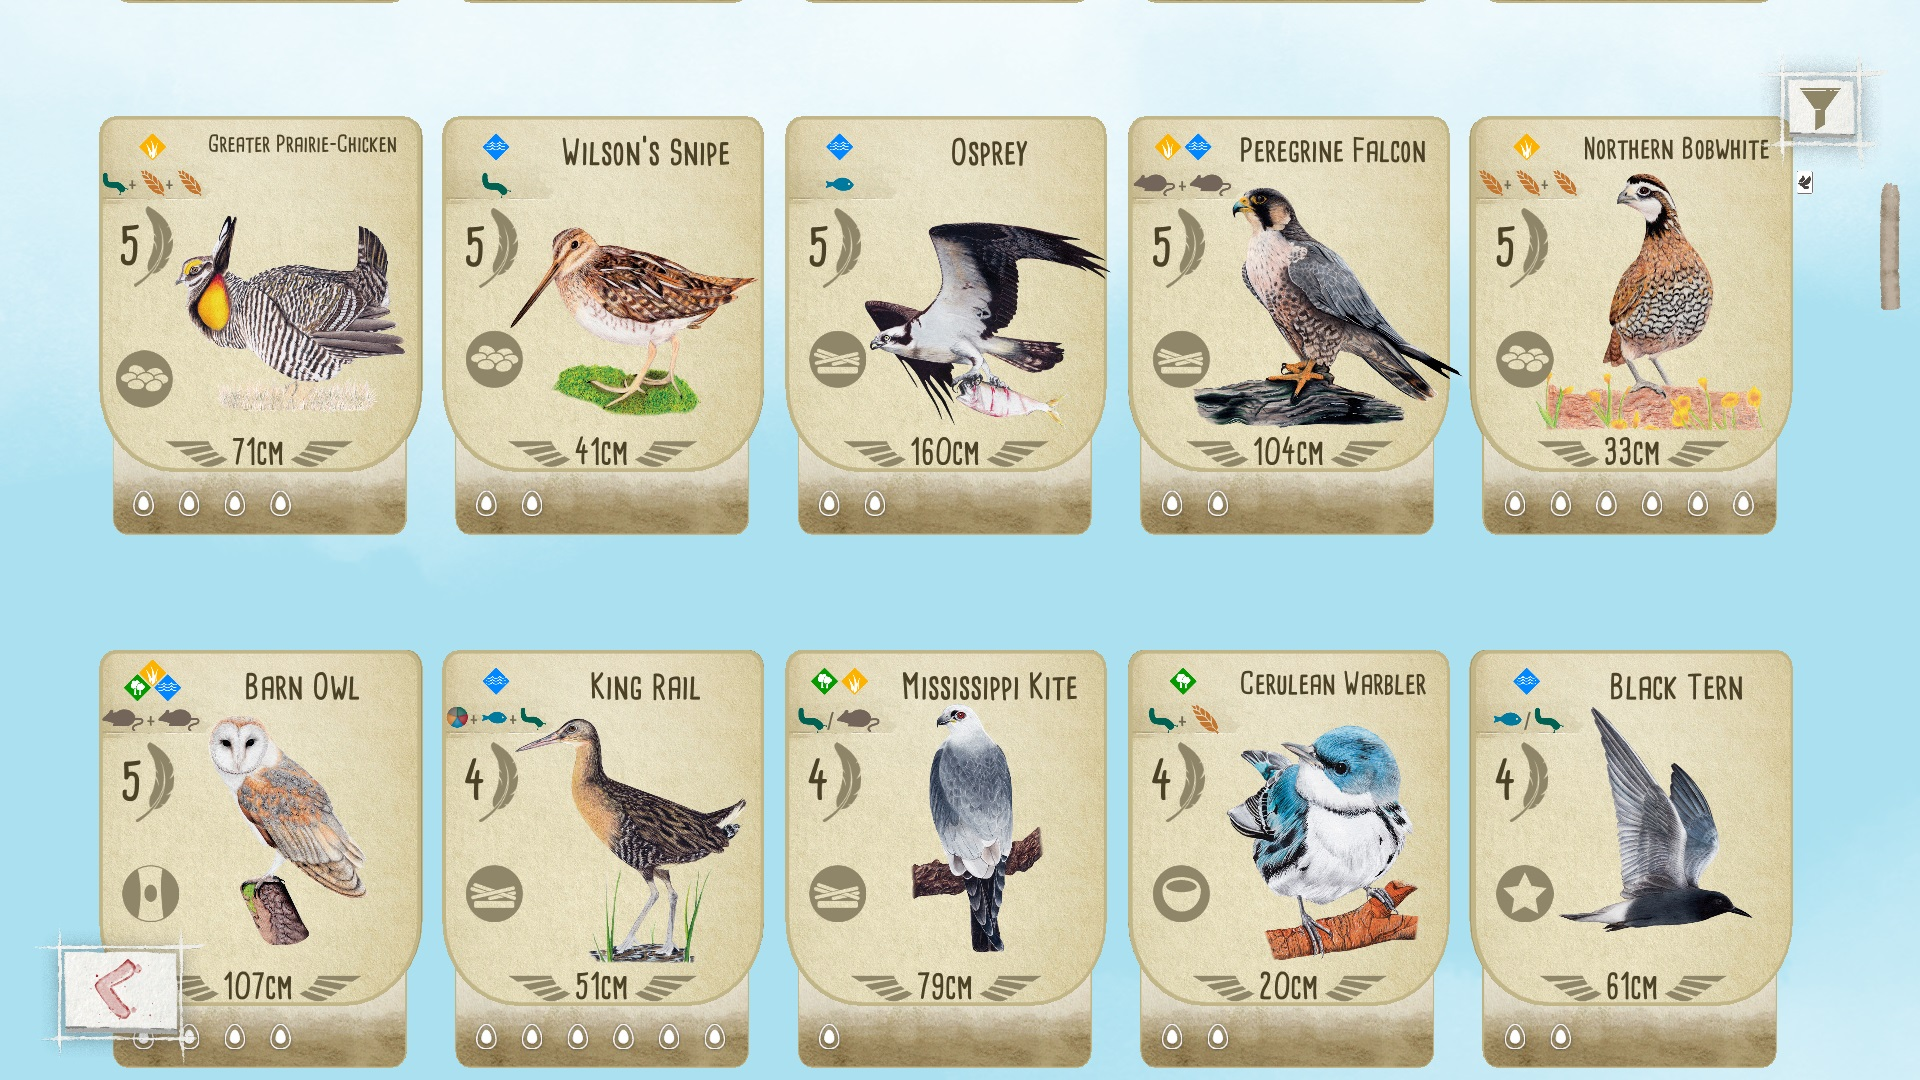 Wingspan's bird cards look amazing